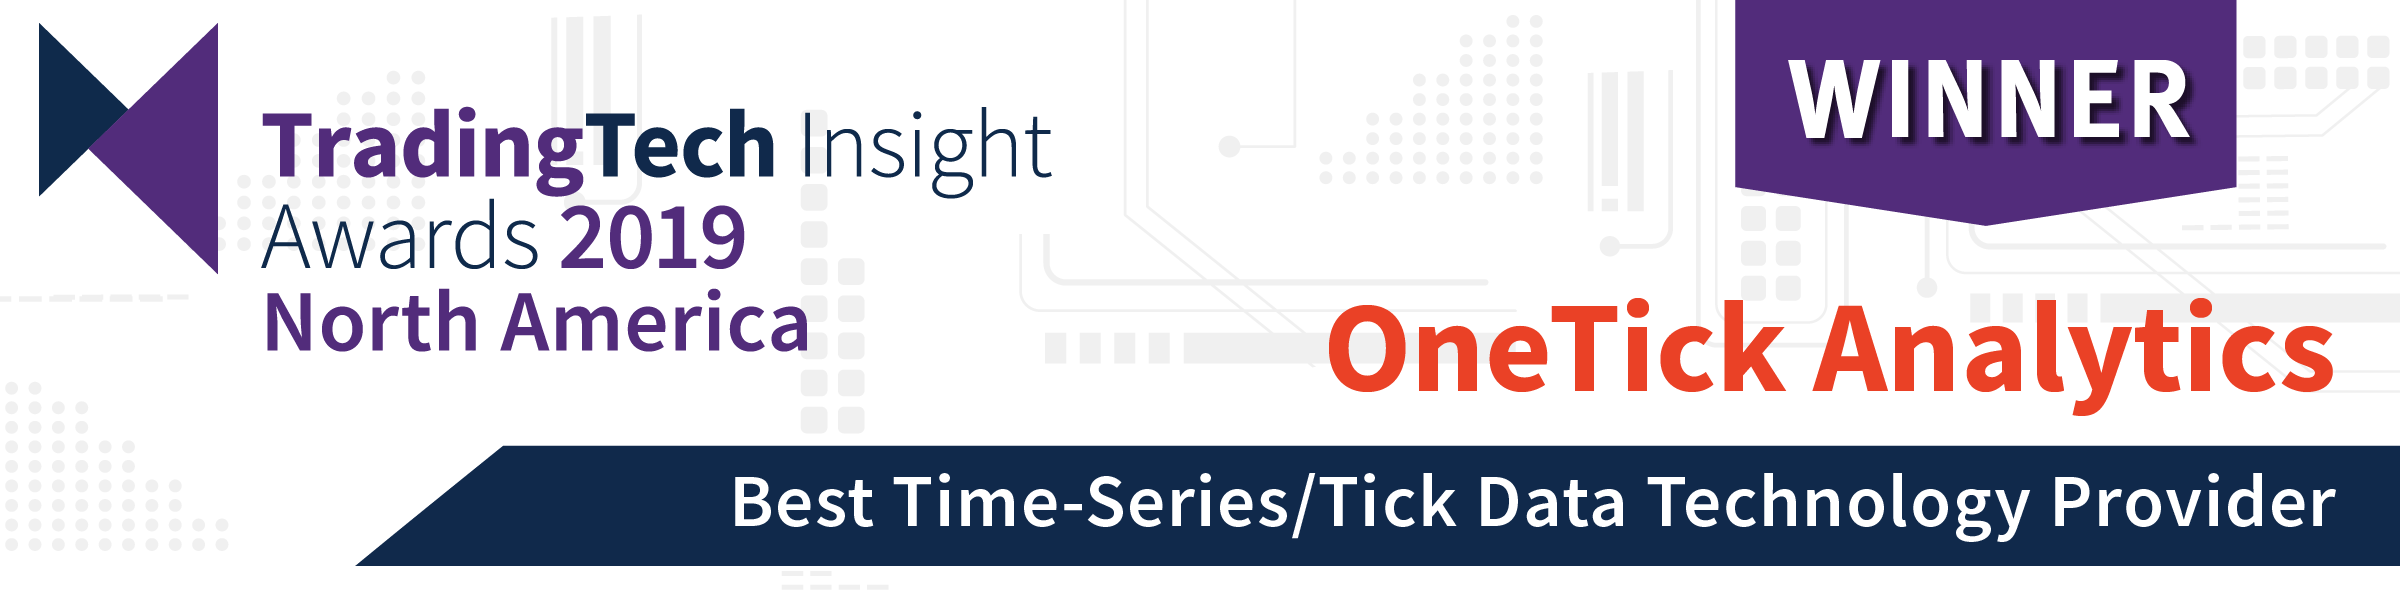 OneTick Analytics_banner